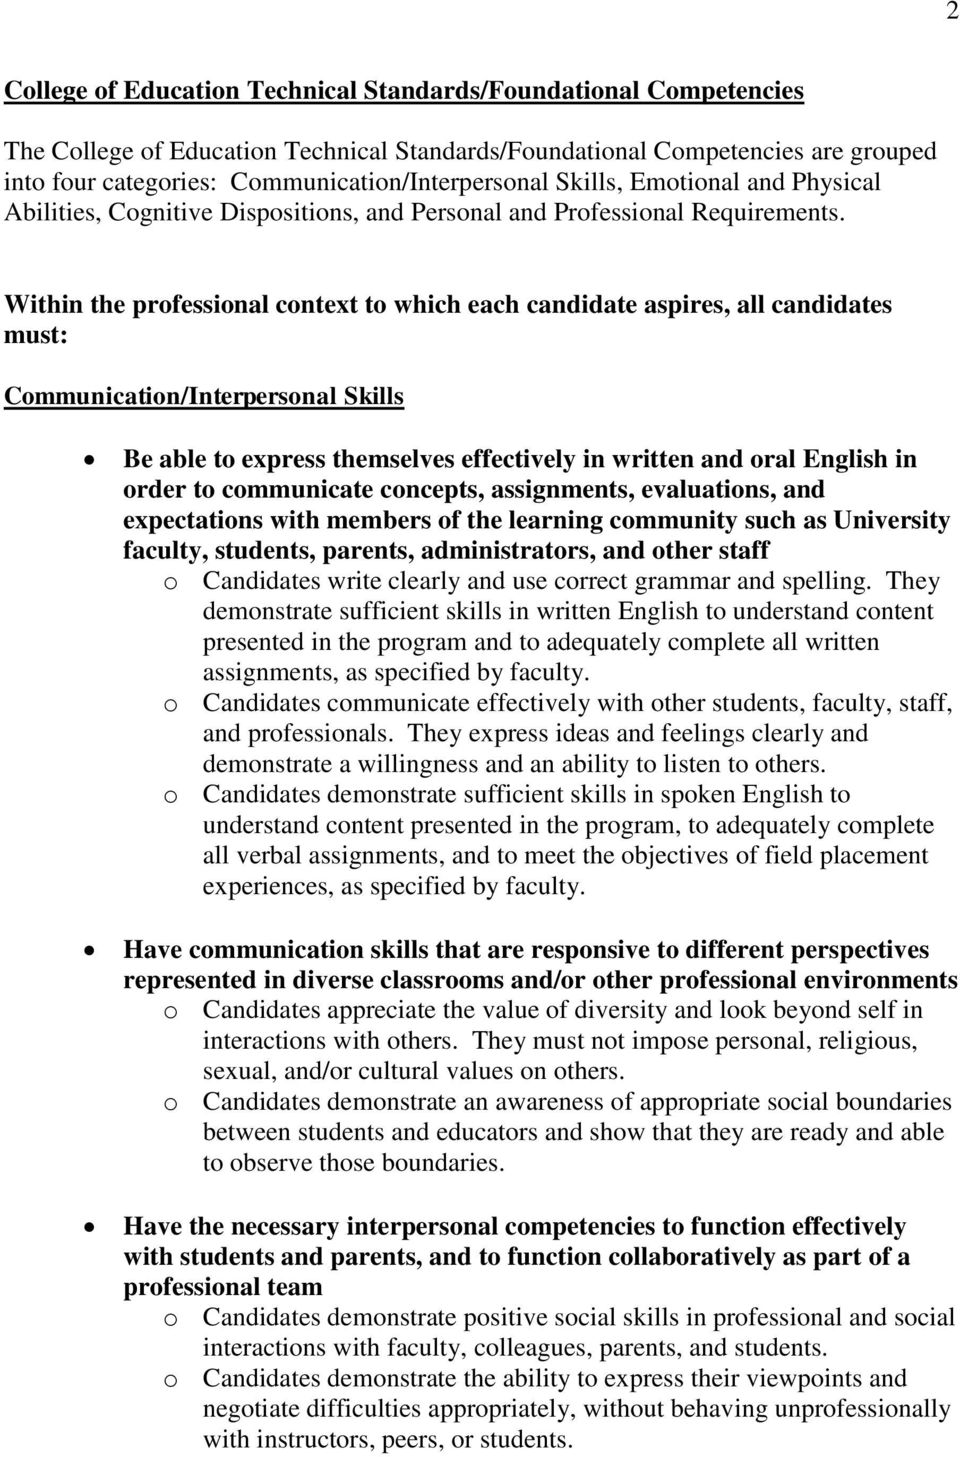 Within the professional context to which each candidate aspires, all candidates must: Communication/Interpersonal Skills Be able to express themselves effectively in written and oral English in order